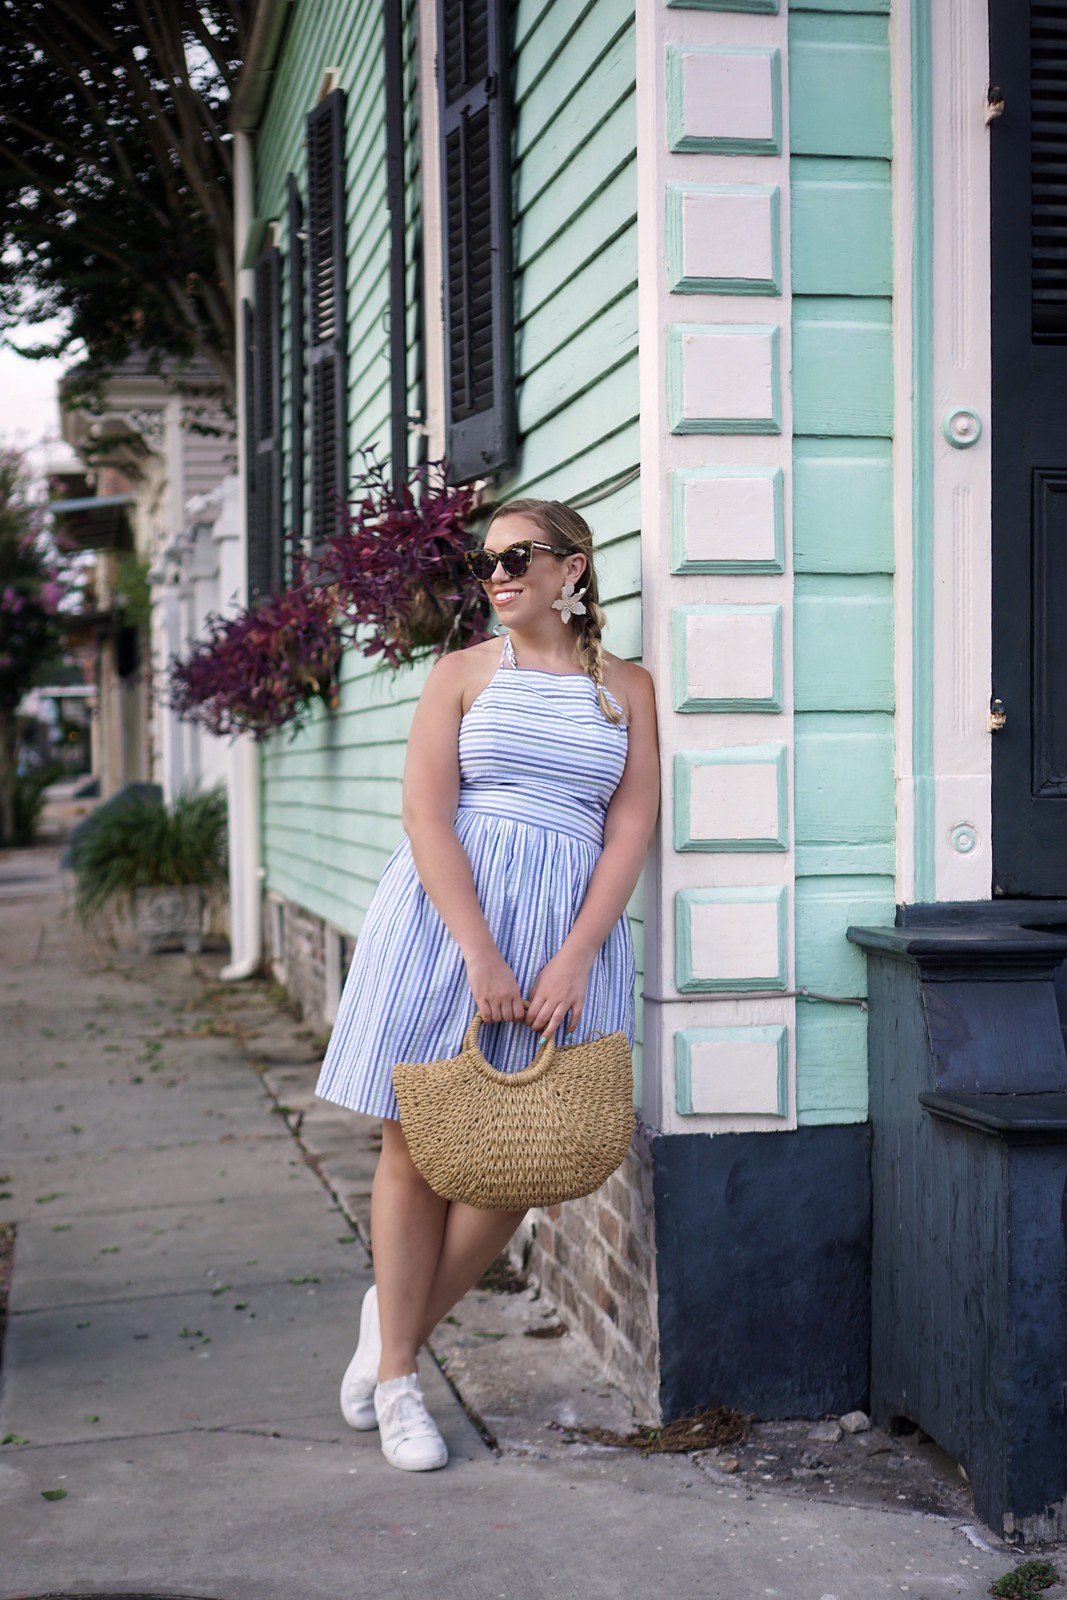 Blue Striped Seersucker Halter Top Dress | 6 Outfits You Can Actually Wear in New Orleans in the Summer | What to Wear in New Orleans in the Summer | New Orleans Packing List | Summer in New Orleans | Best Outfits to Wear in New Orleans | What I Packed for New Orleans